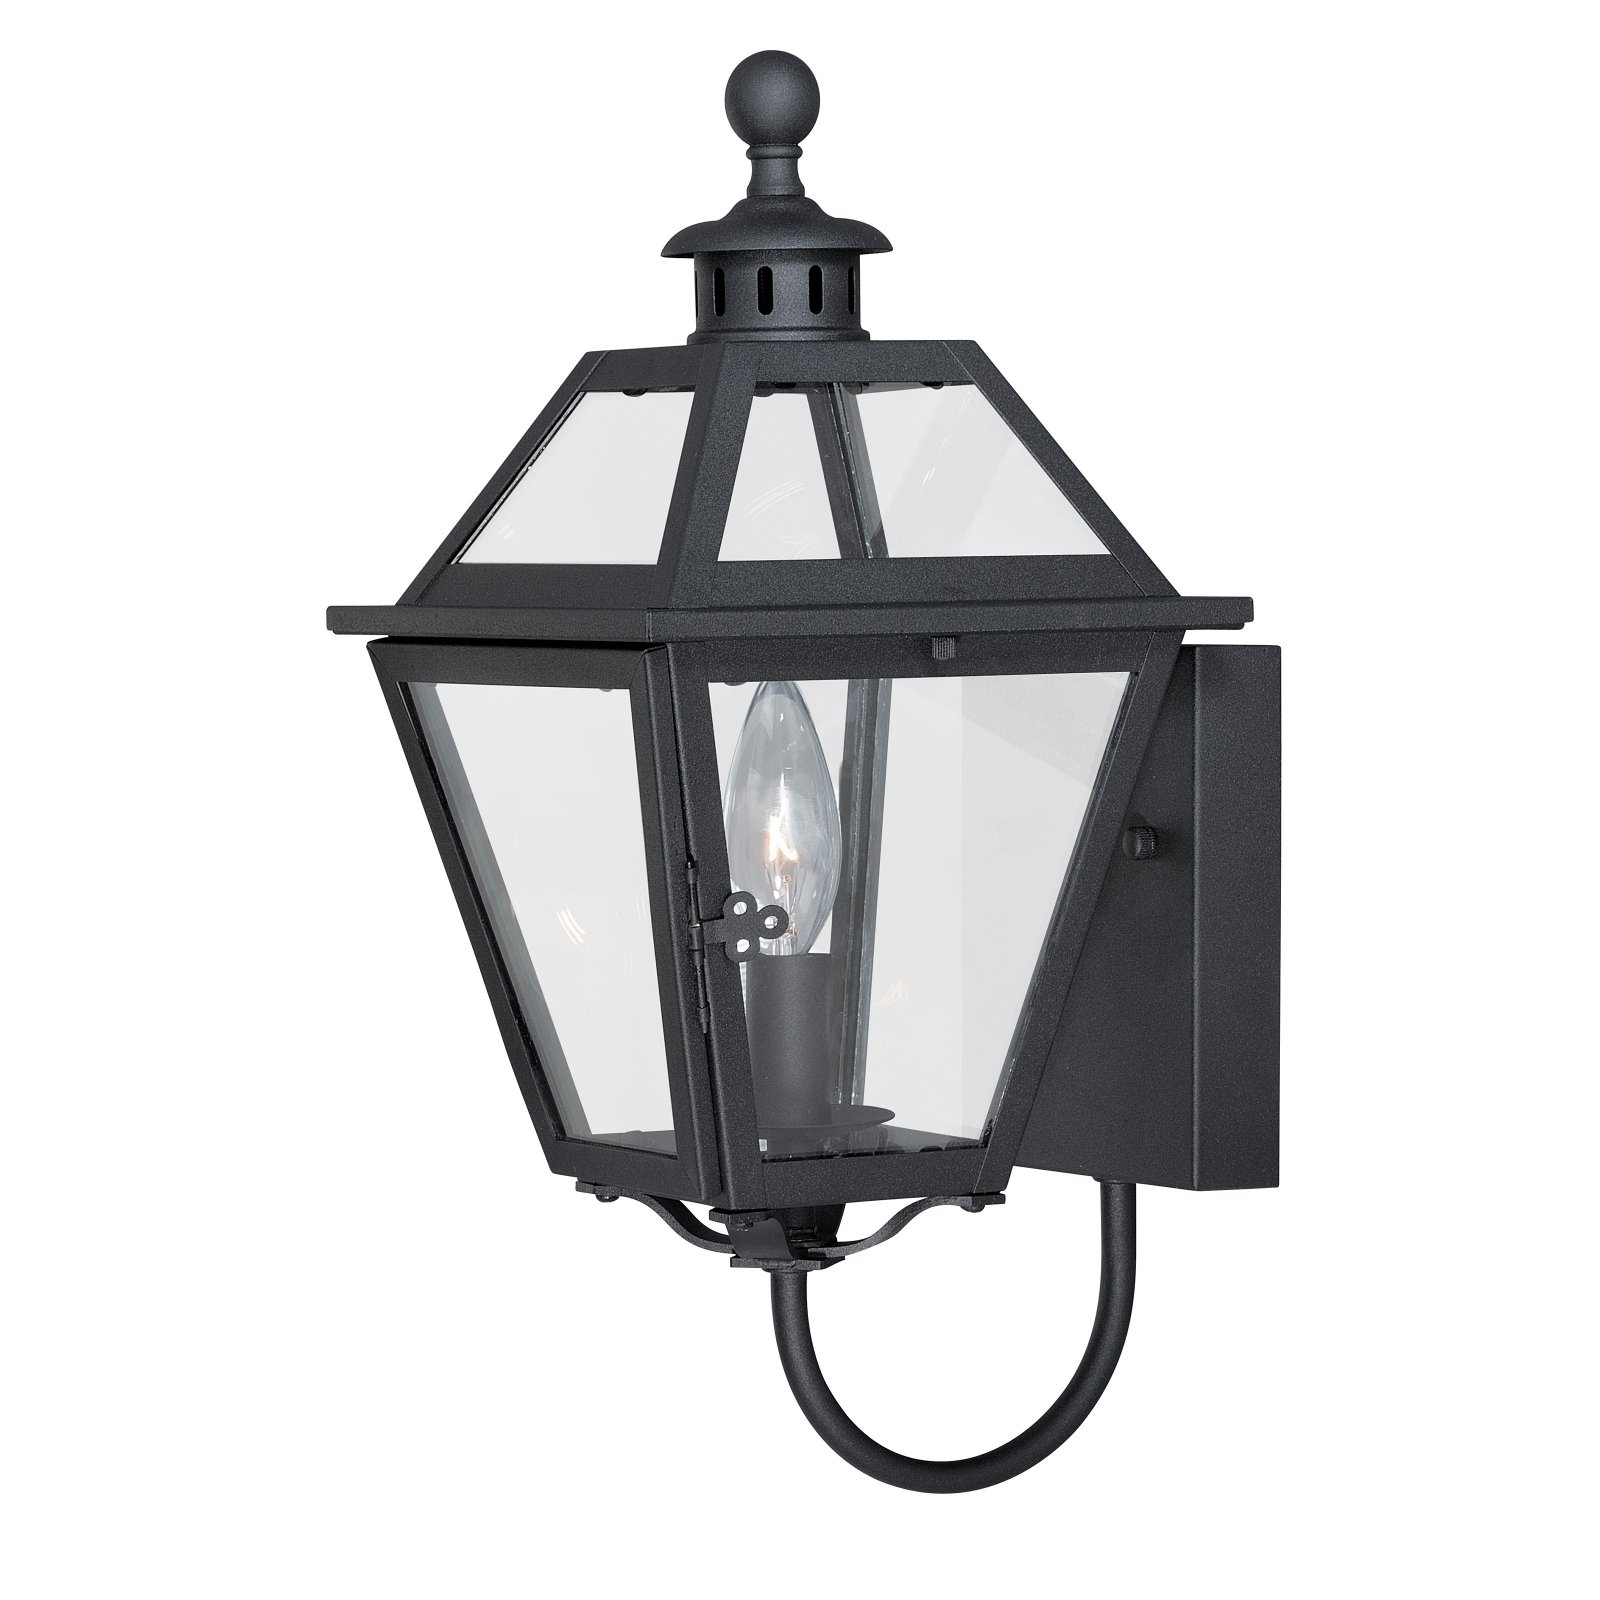 Vaxcel Nottingham T0078 Outdoor Wall Sconce